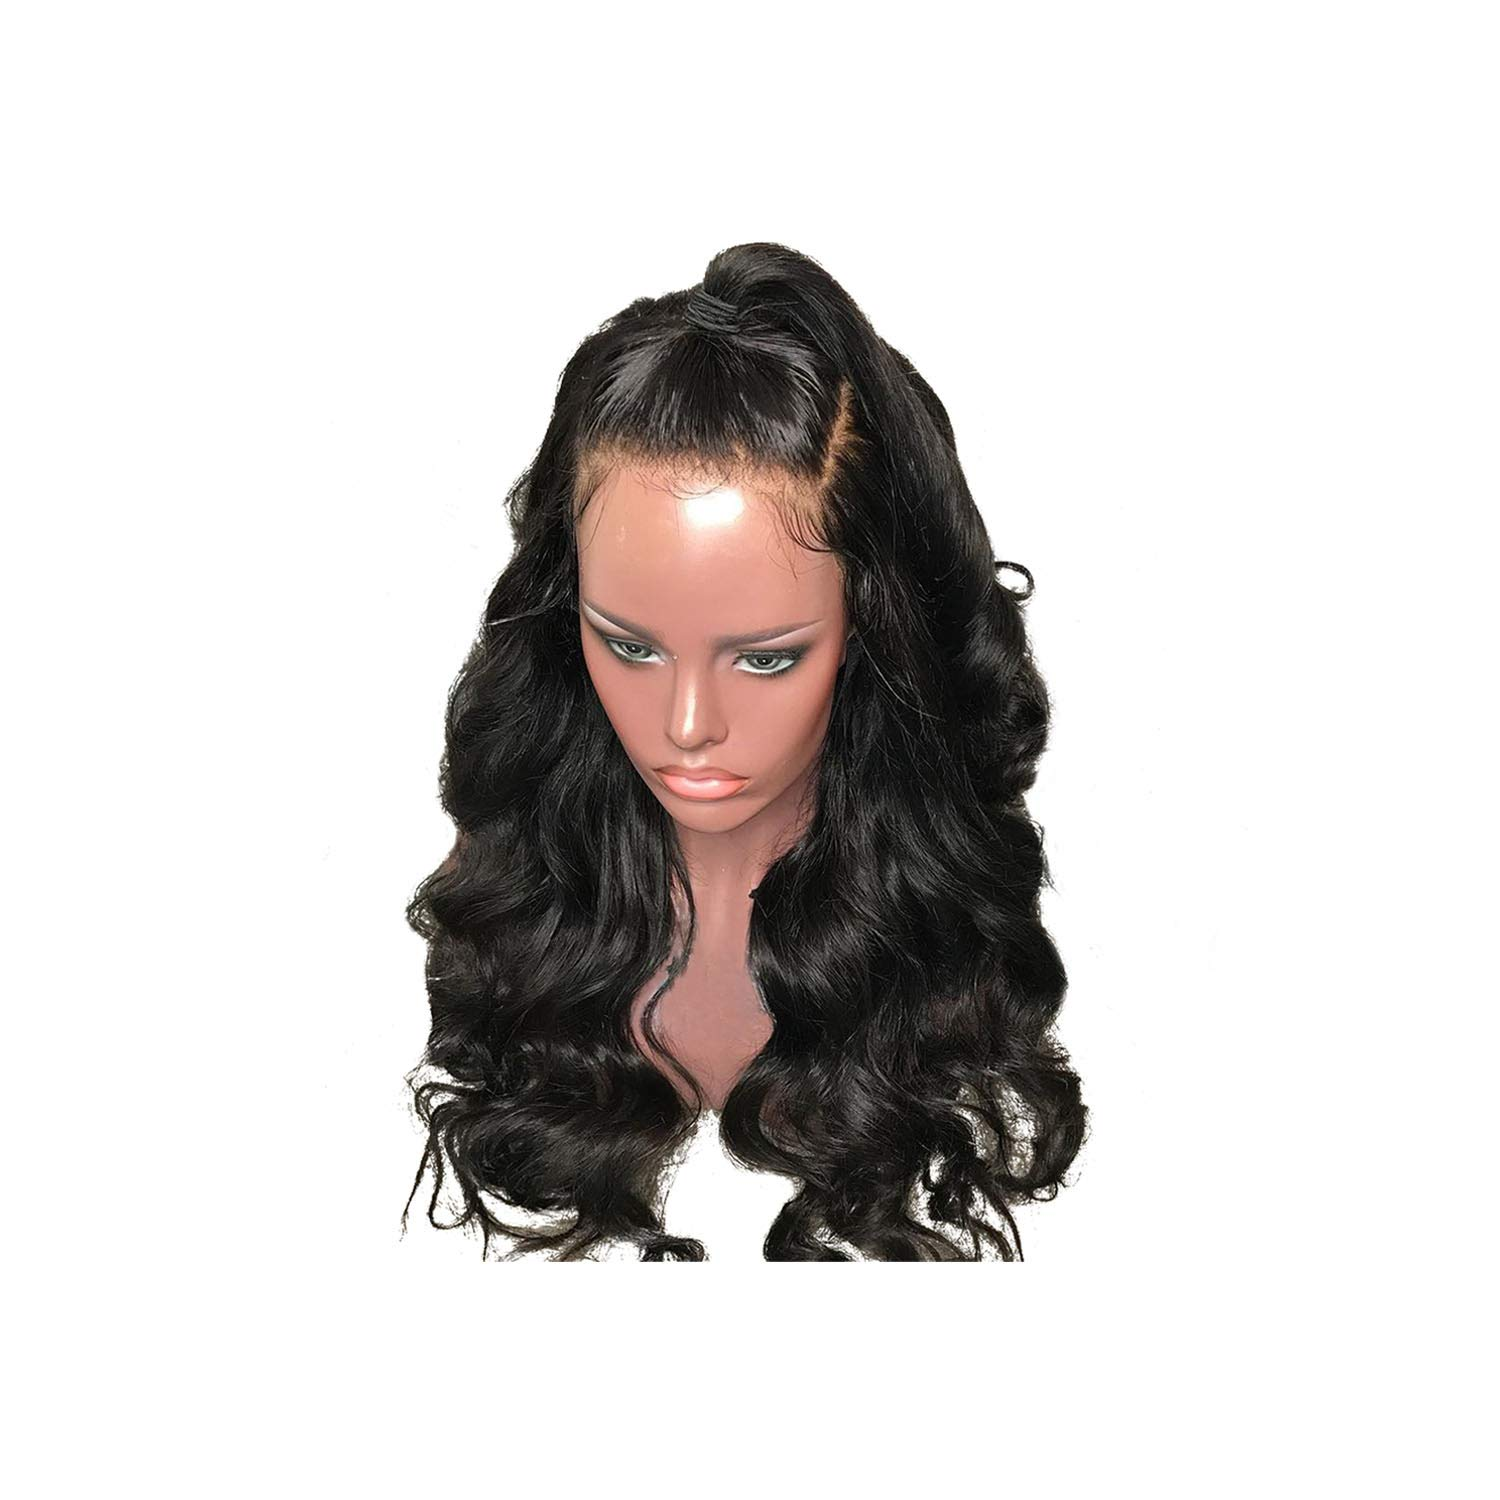 Sweetlove 180% Density 360 Lace Frontal Wig Pre Plucked With Baby Hair 10''-22'' Body Wave Natural Color Brazilian Remy Hair Wigs,Natural Color,16Inches,150 Density